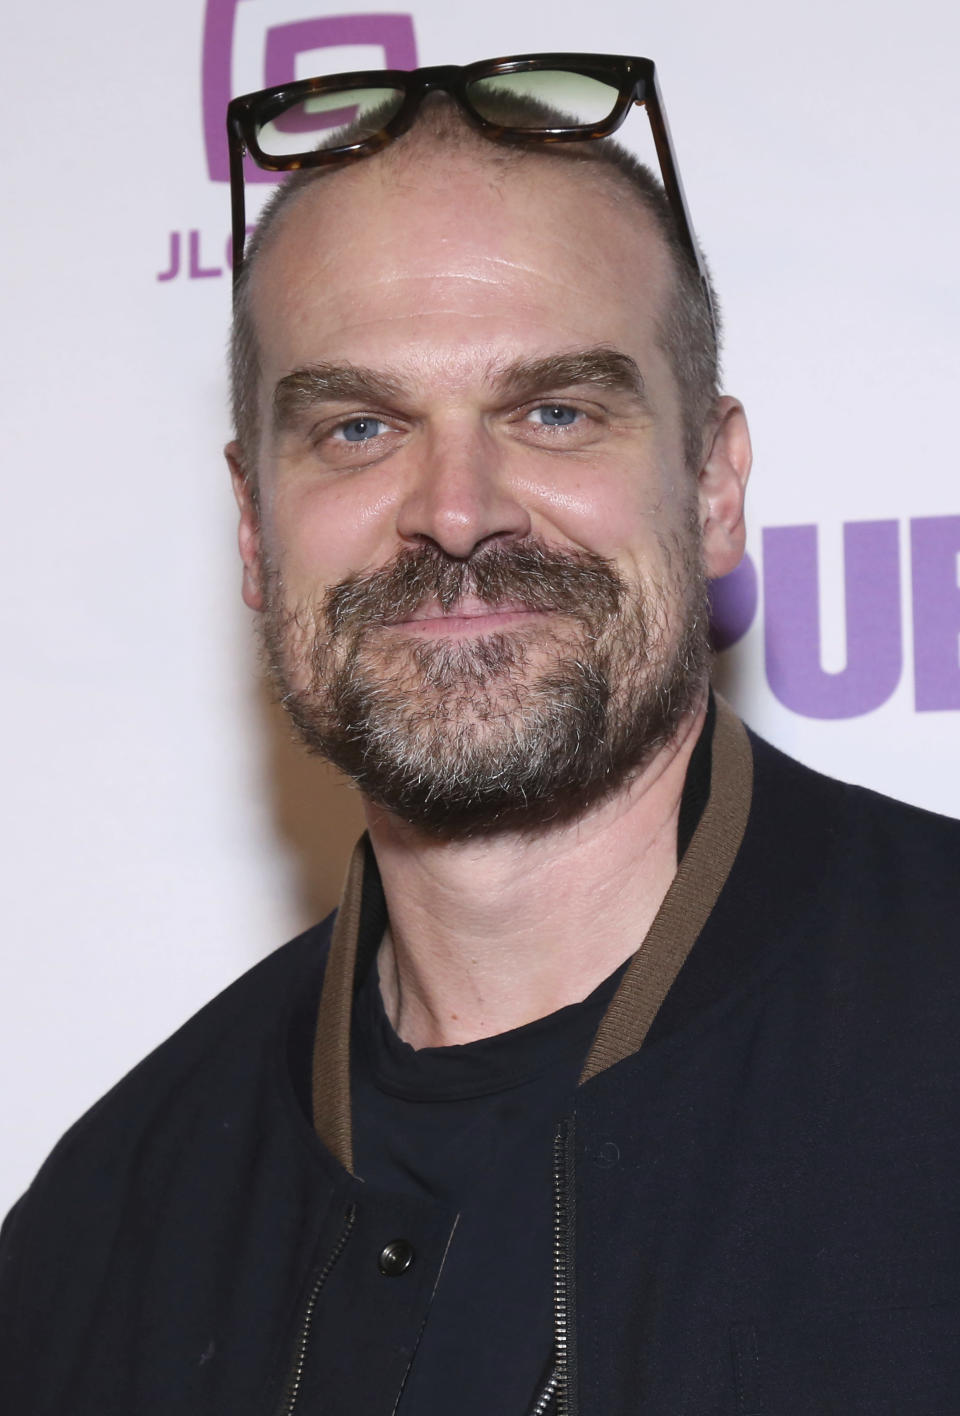 David Harbour at the 2021 Public Theater Gala at the Delacorte Theater - Credit: Joseph Marzullo/MediaPunch/IPx